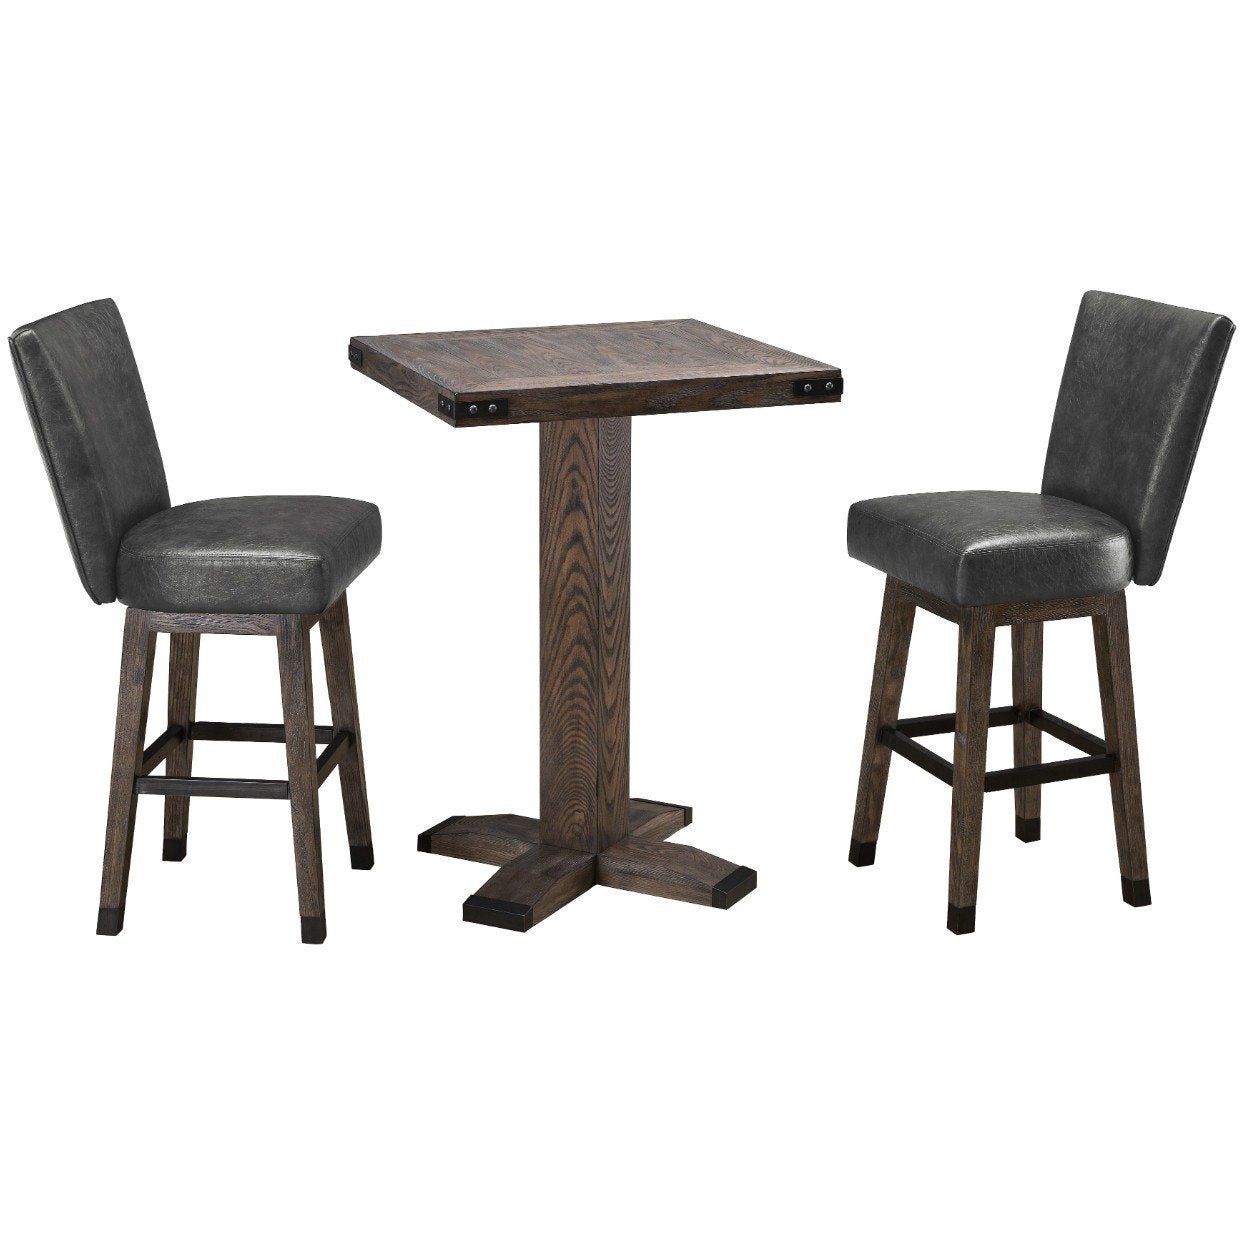 Signature Rustic Pub Table, Stools and Pub Tables, Legacy - Danny Vegh's